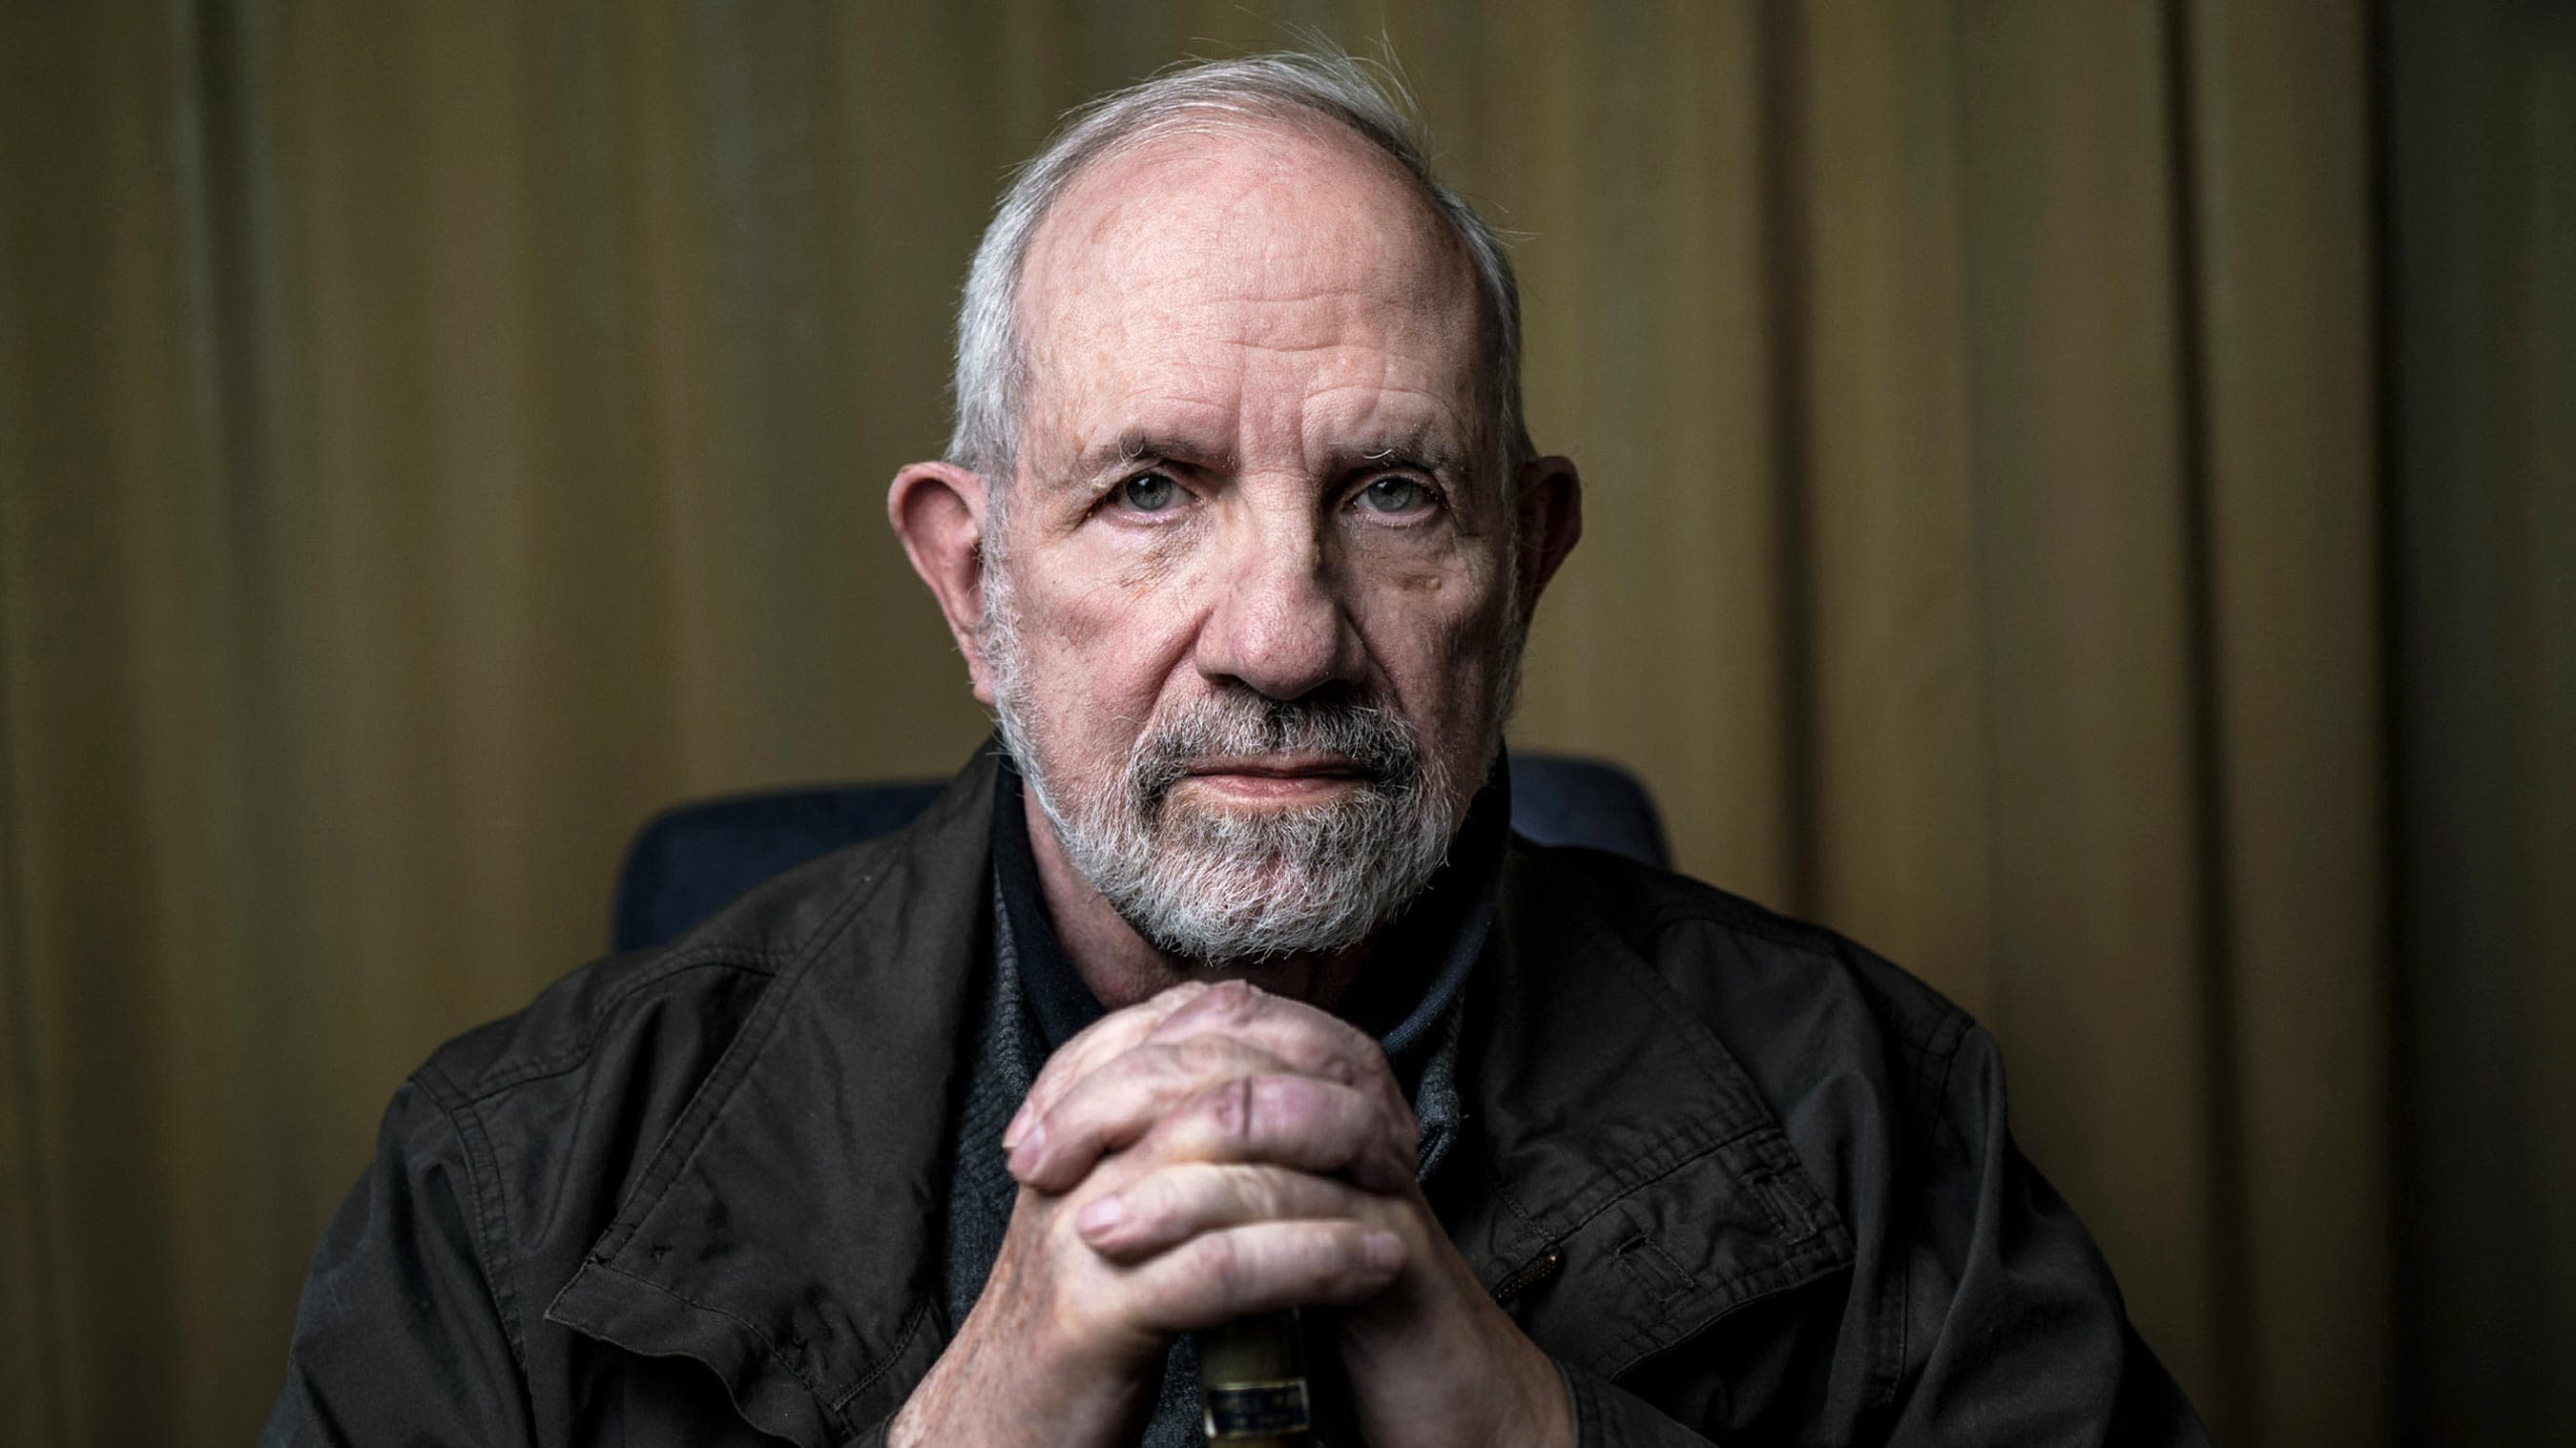 Brian De Palma, co-author of Are Snakes Necessary? (2020)